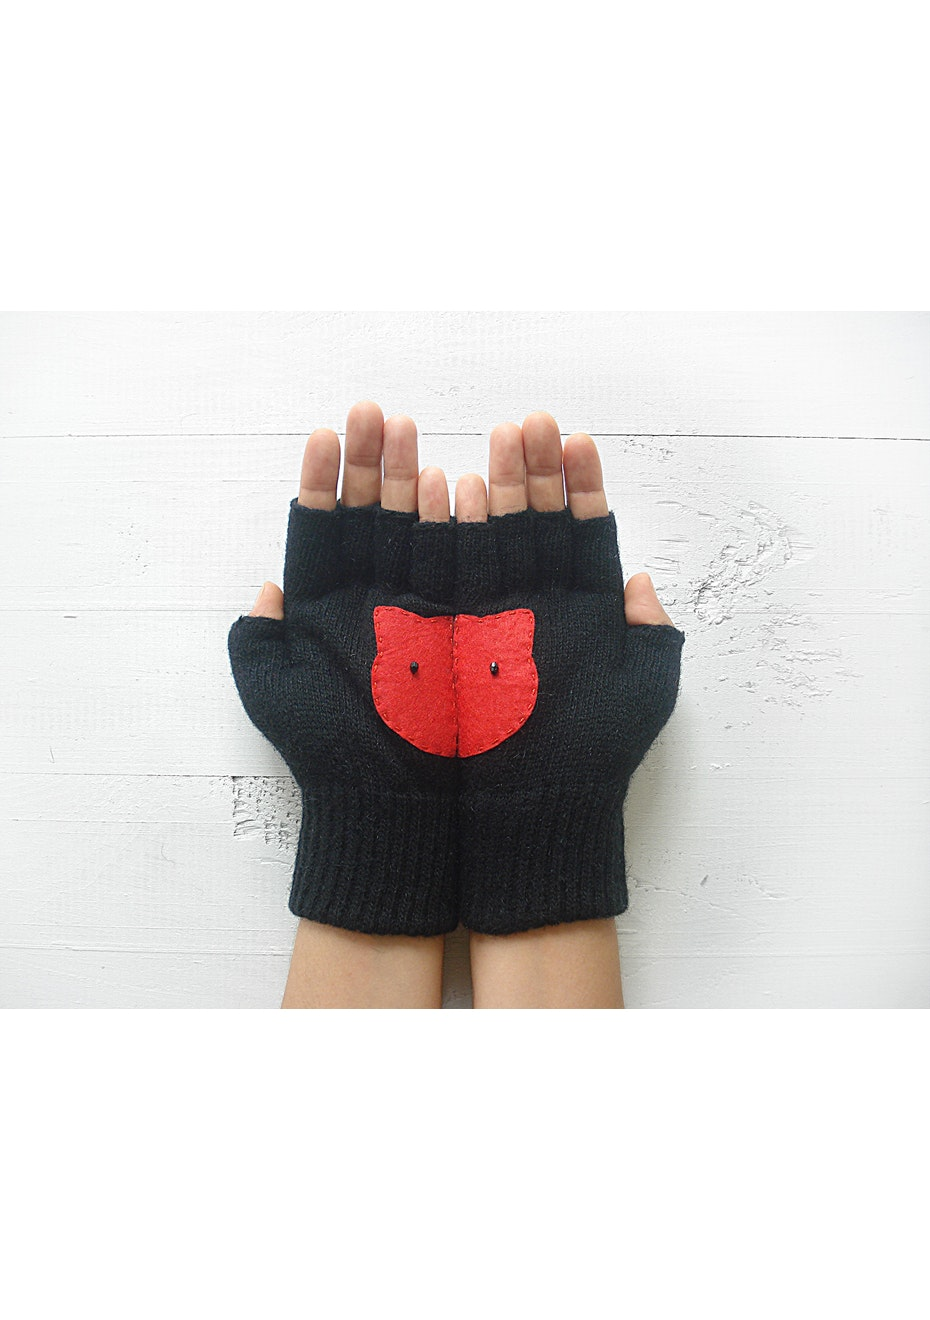 Kitty Fingerless Gloves - Black/Red